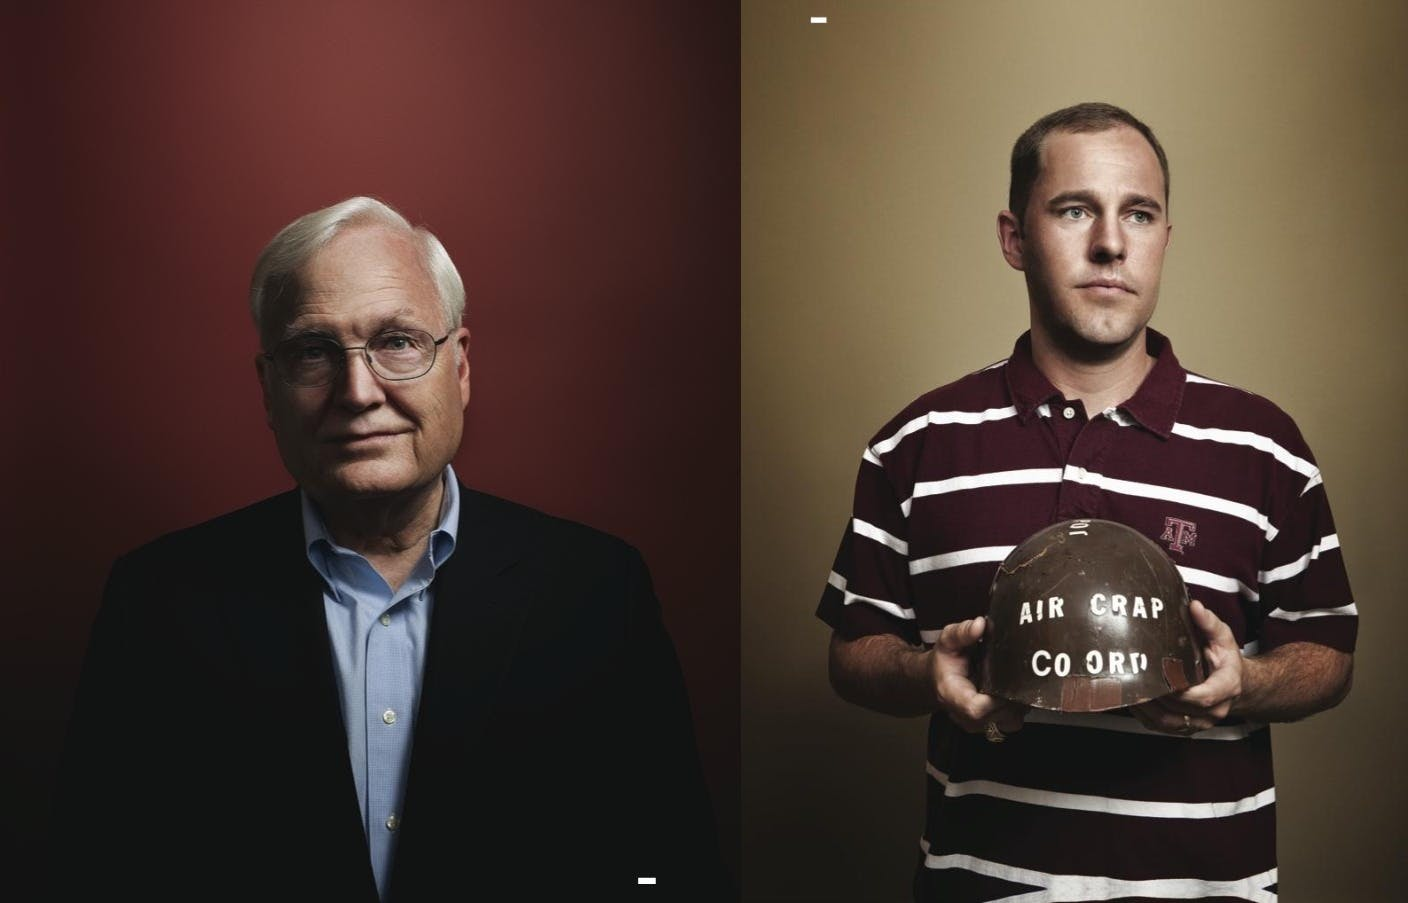 """Left: Ray Bowen, who was the president of A&M during the tragedy, was """"heartsick"""" when he made the decision to cancel the 2002 bonfire. Right: Chip Thiel holding his cracked helmet, or """"pot,"""" was on top of the stack at the time of the accident. He lost three close friends and suffered massive injuries, including a shattered leg and a punctured lung."""